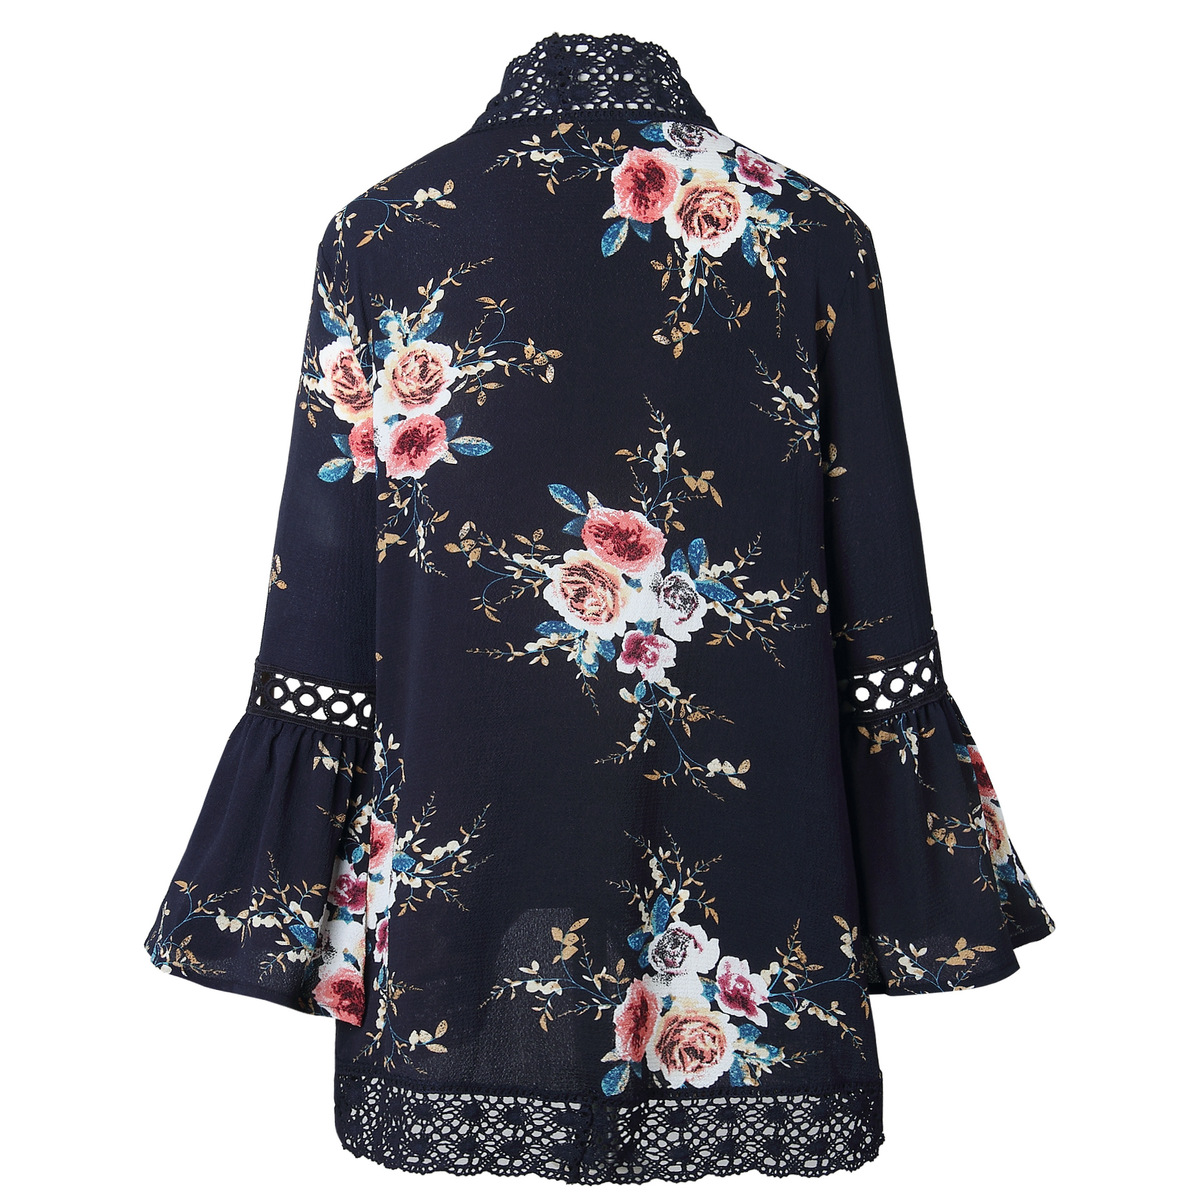 HTB1sql v2iSBuNkSnhJq6zDcpXaT Women Plus Size Loose Casual Basic Jackets Female 2018 Autumn Long Flare Sleeve Floral Print Outwear Coat Open Stitch Clothing